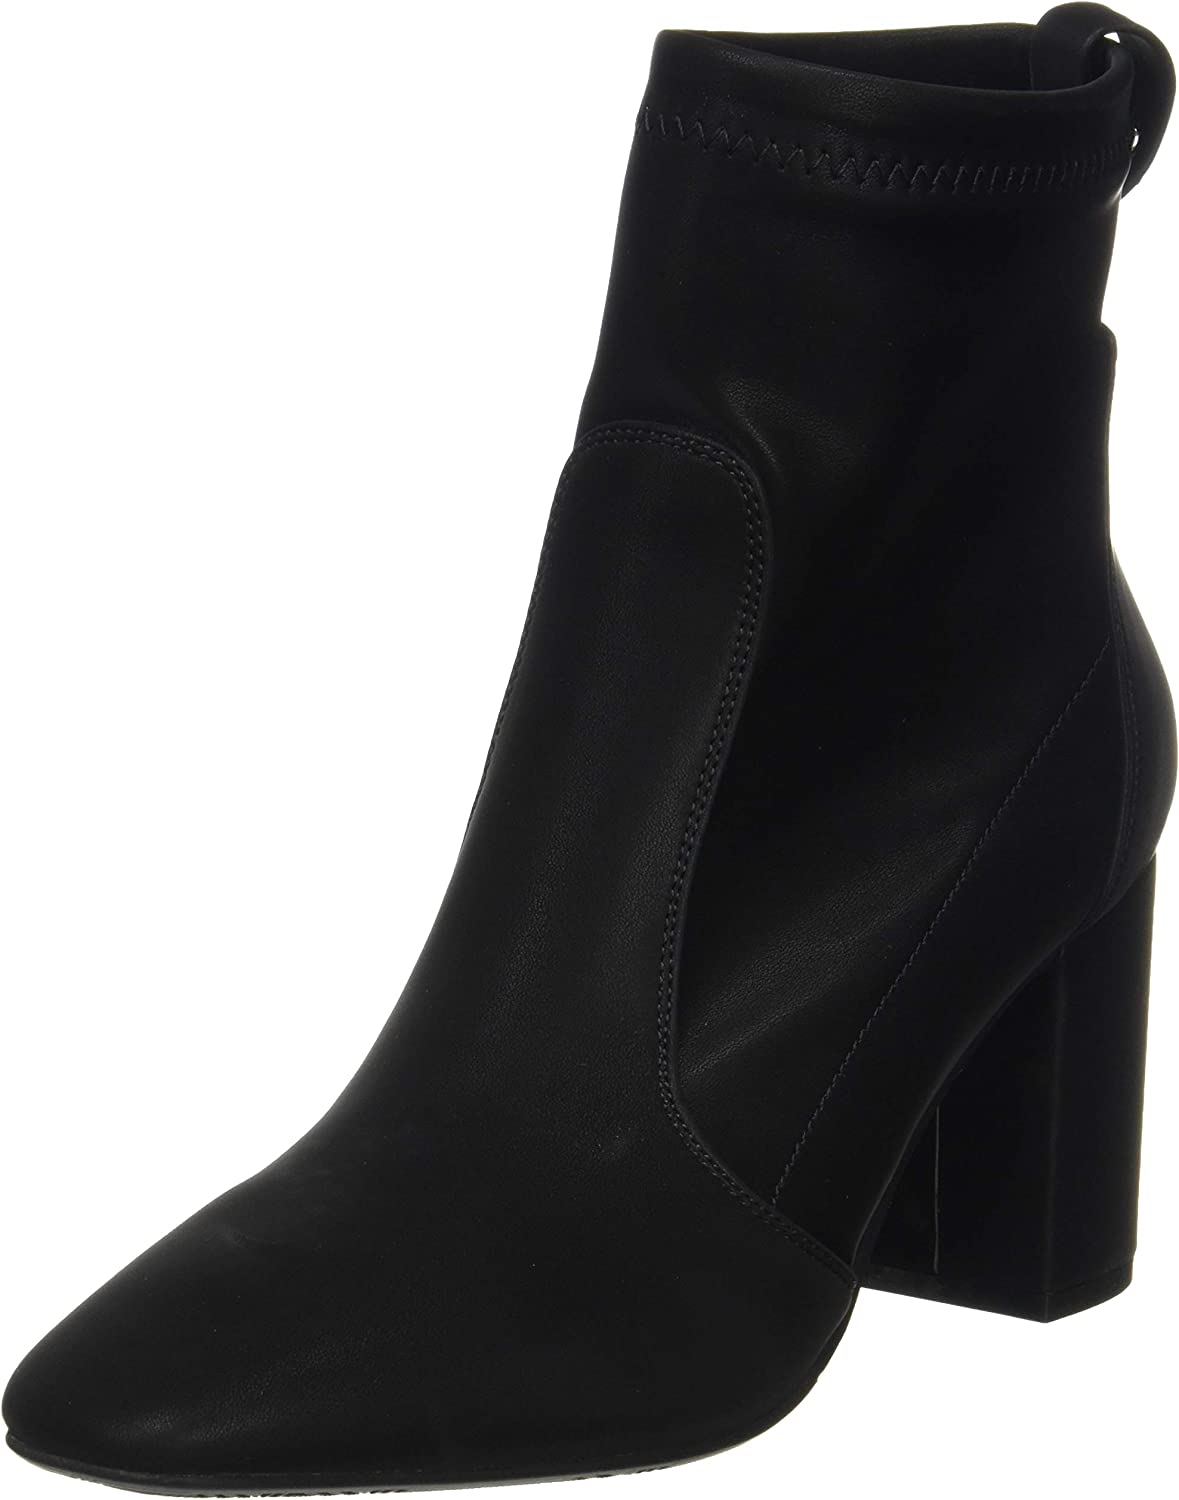 GIOSEPPO Manufacturer direct delivery Max 79% OFF Women's Elastic Boot Fashion